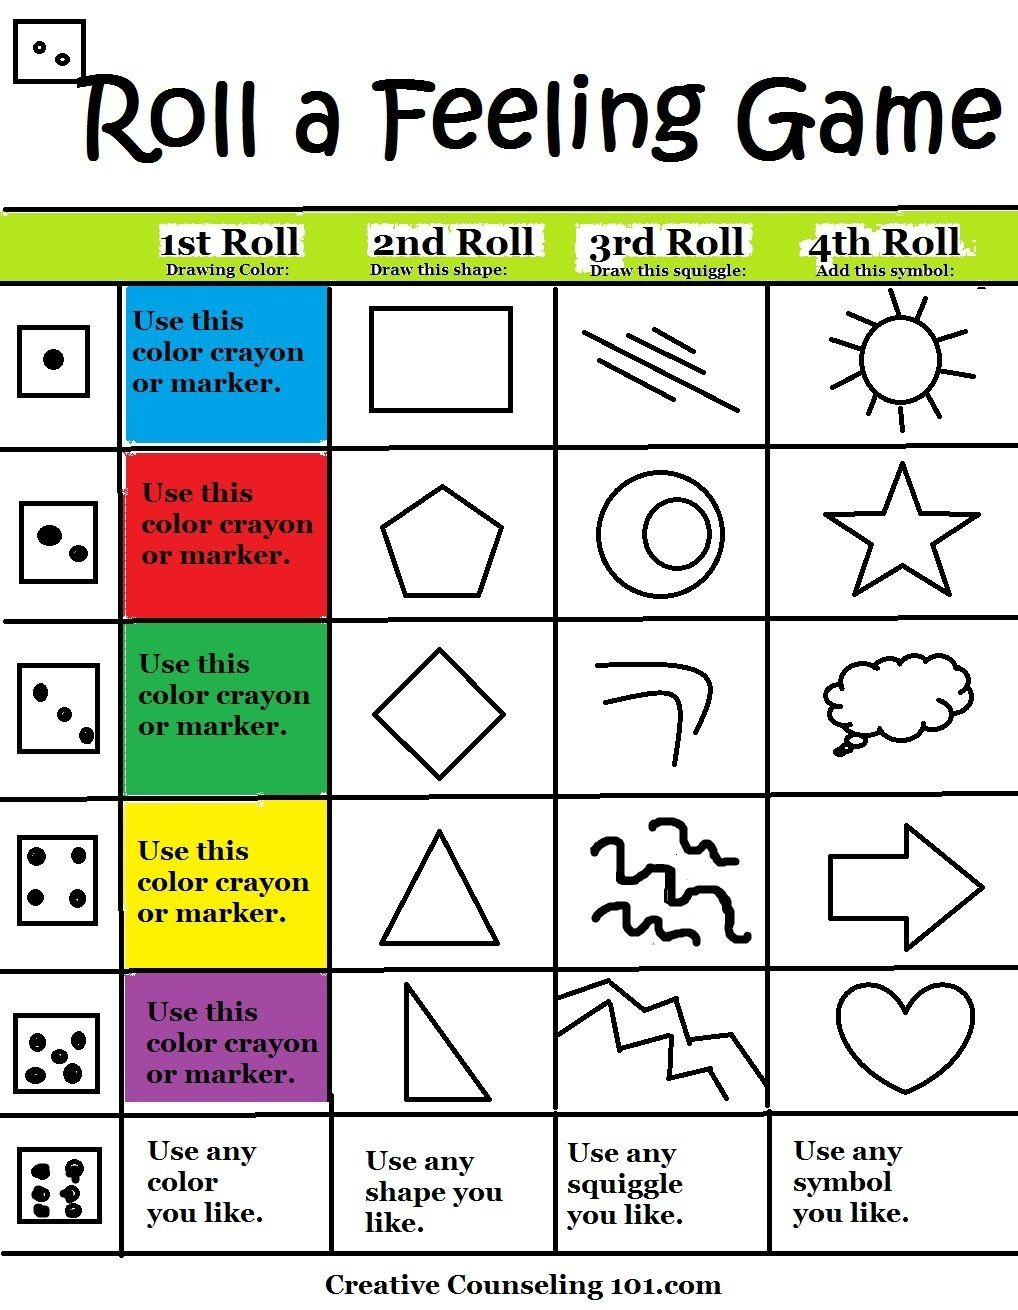 Art Therapy Roll-A-Feelings Game With Free Art Therapy Game Board - Free Printable Recovery Games